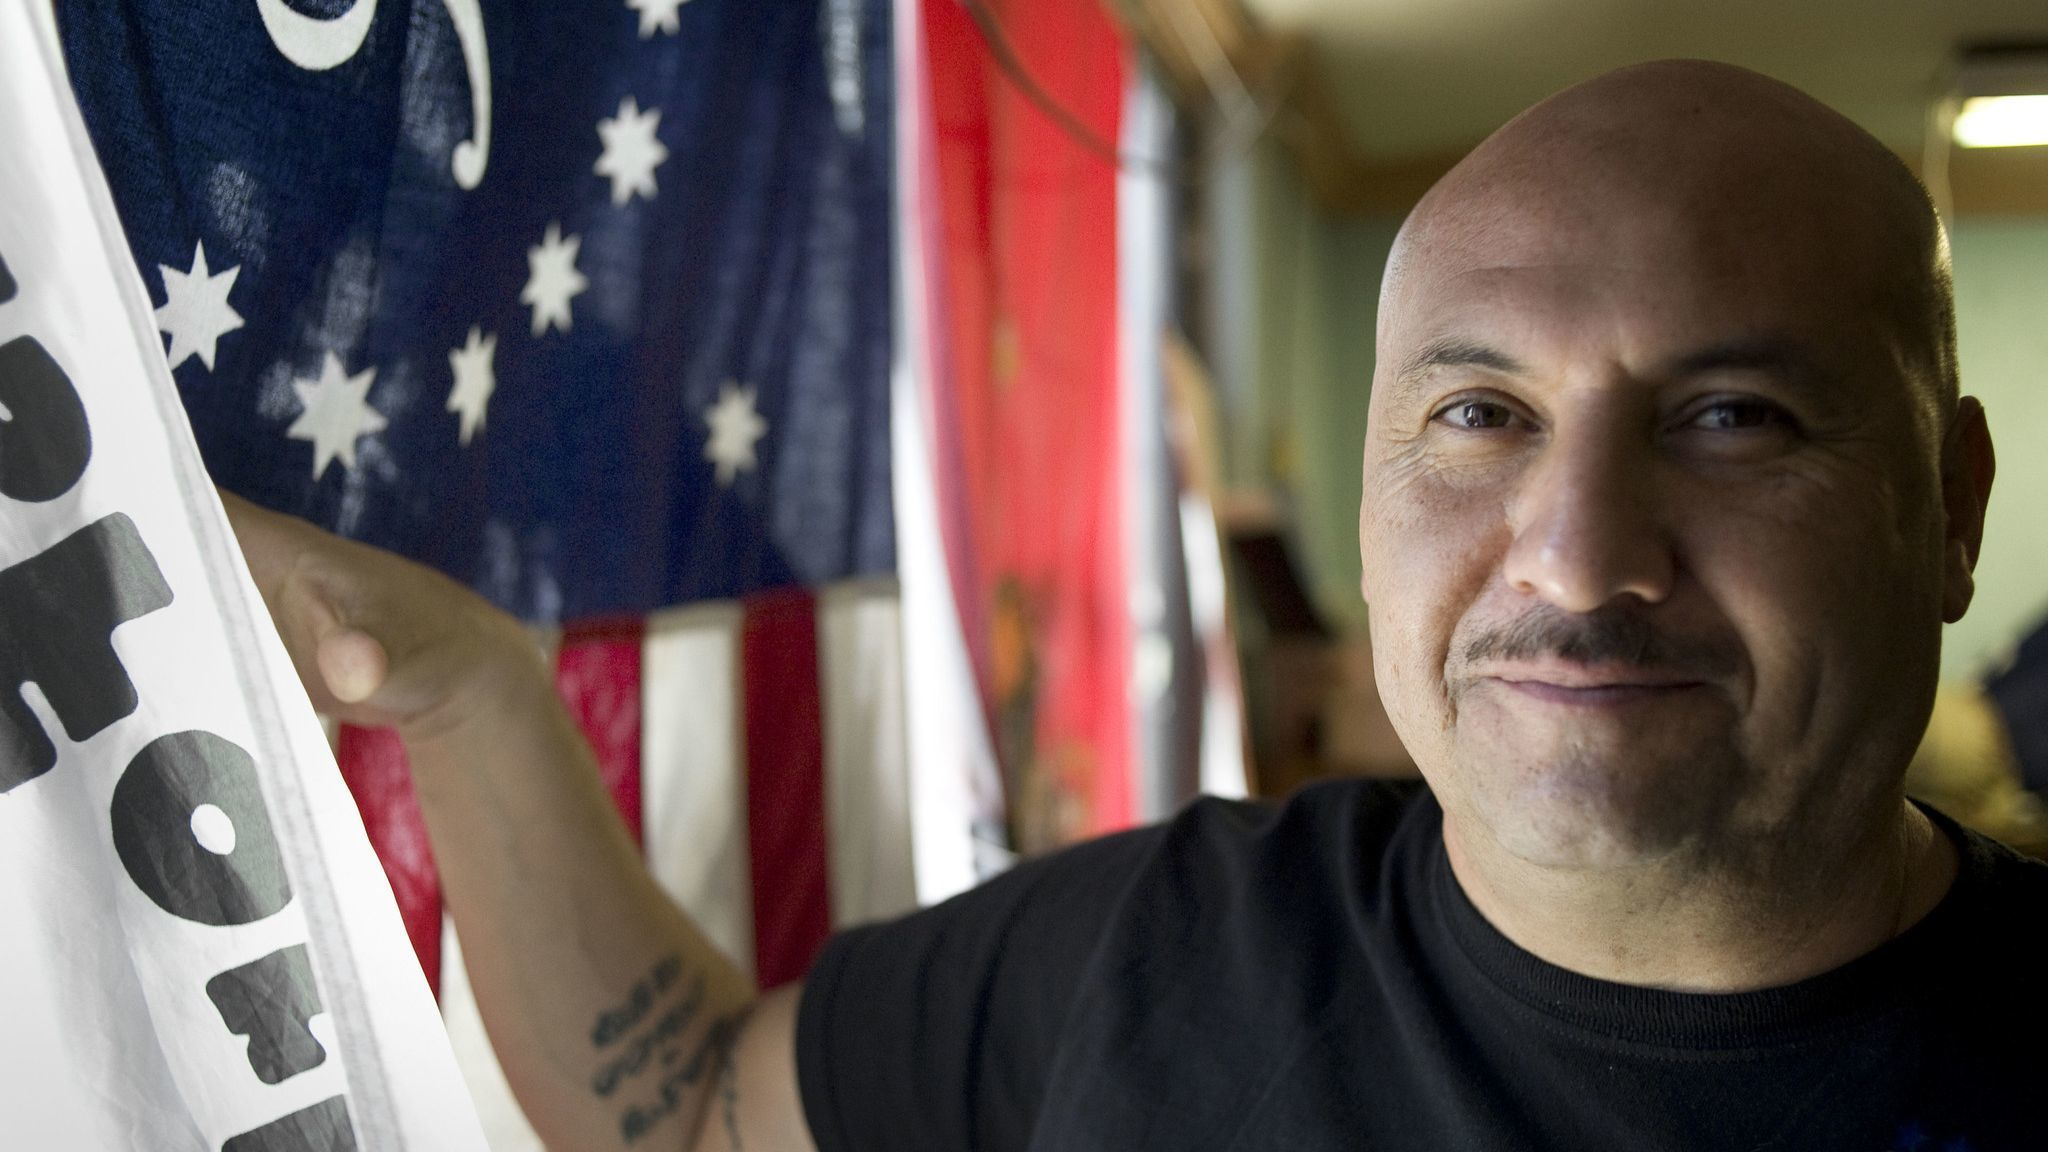 Formerly deported veteran juggling advocacy, health and family in new cross-border life | San Diego Union Tribune